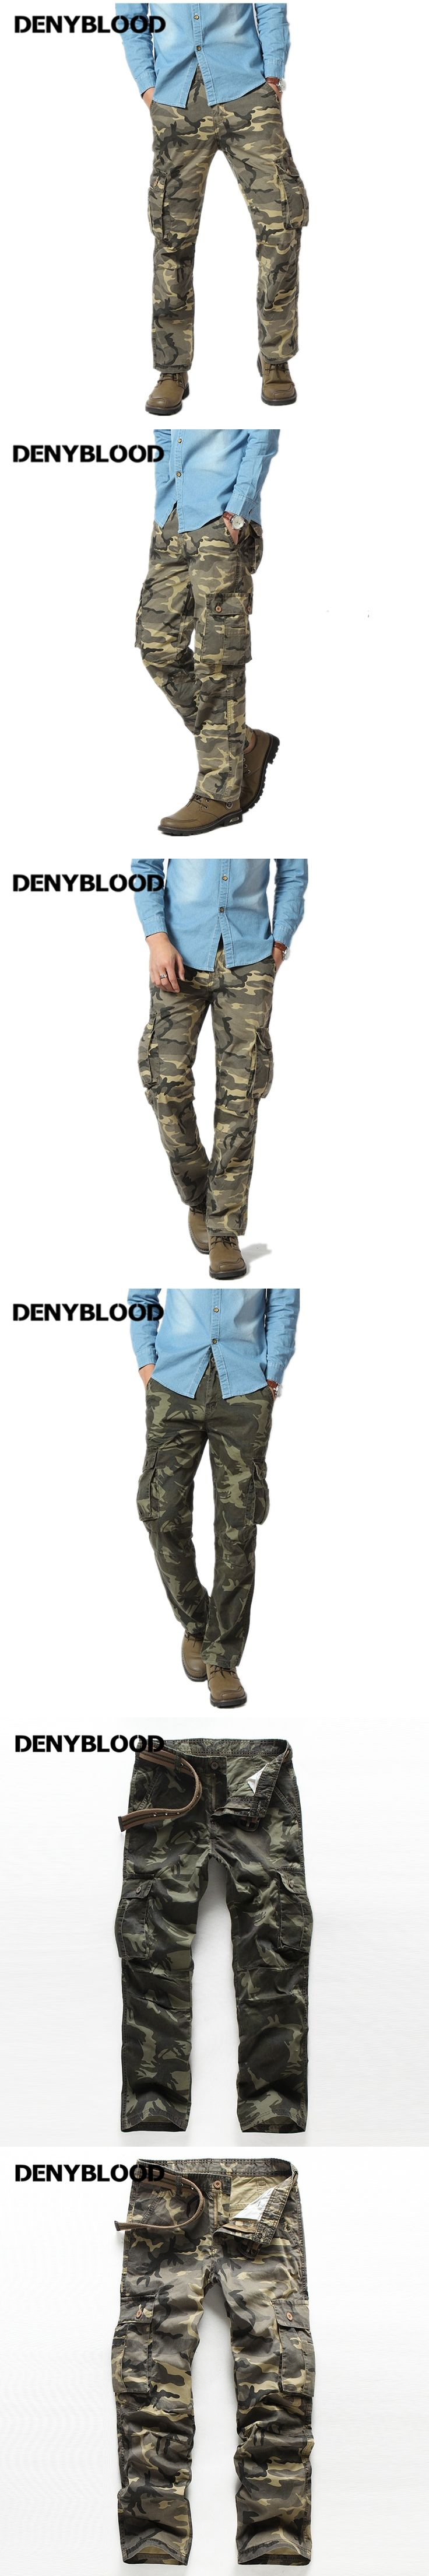 Denyblood Jeans Mens Cargo Pants Army Green Camouflage Chinos Pants Military Working Clothing Casual Pants Trousers 7908